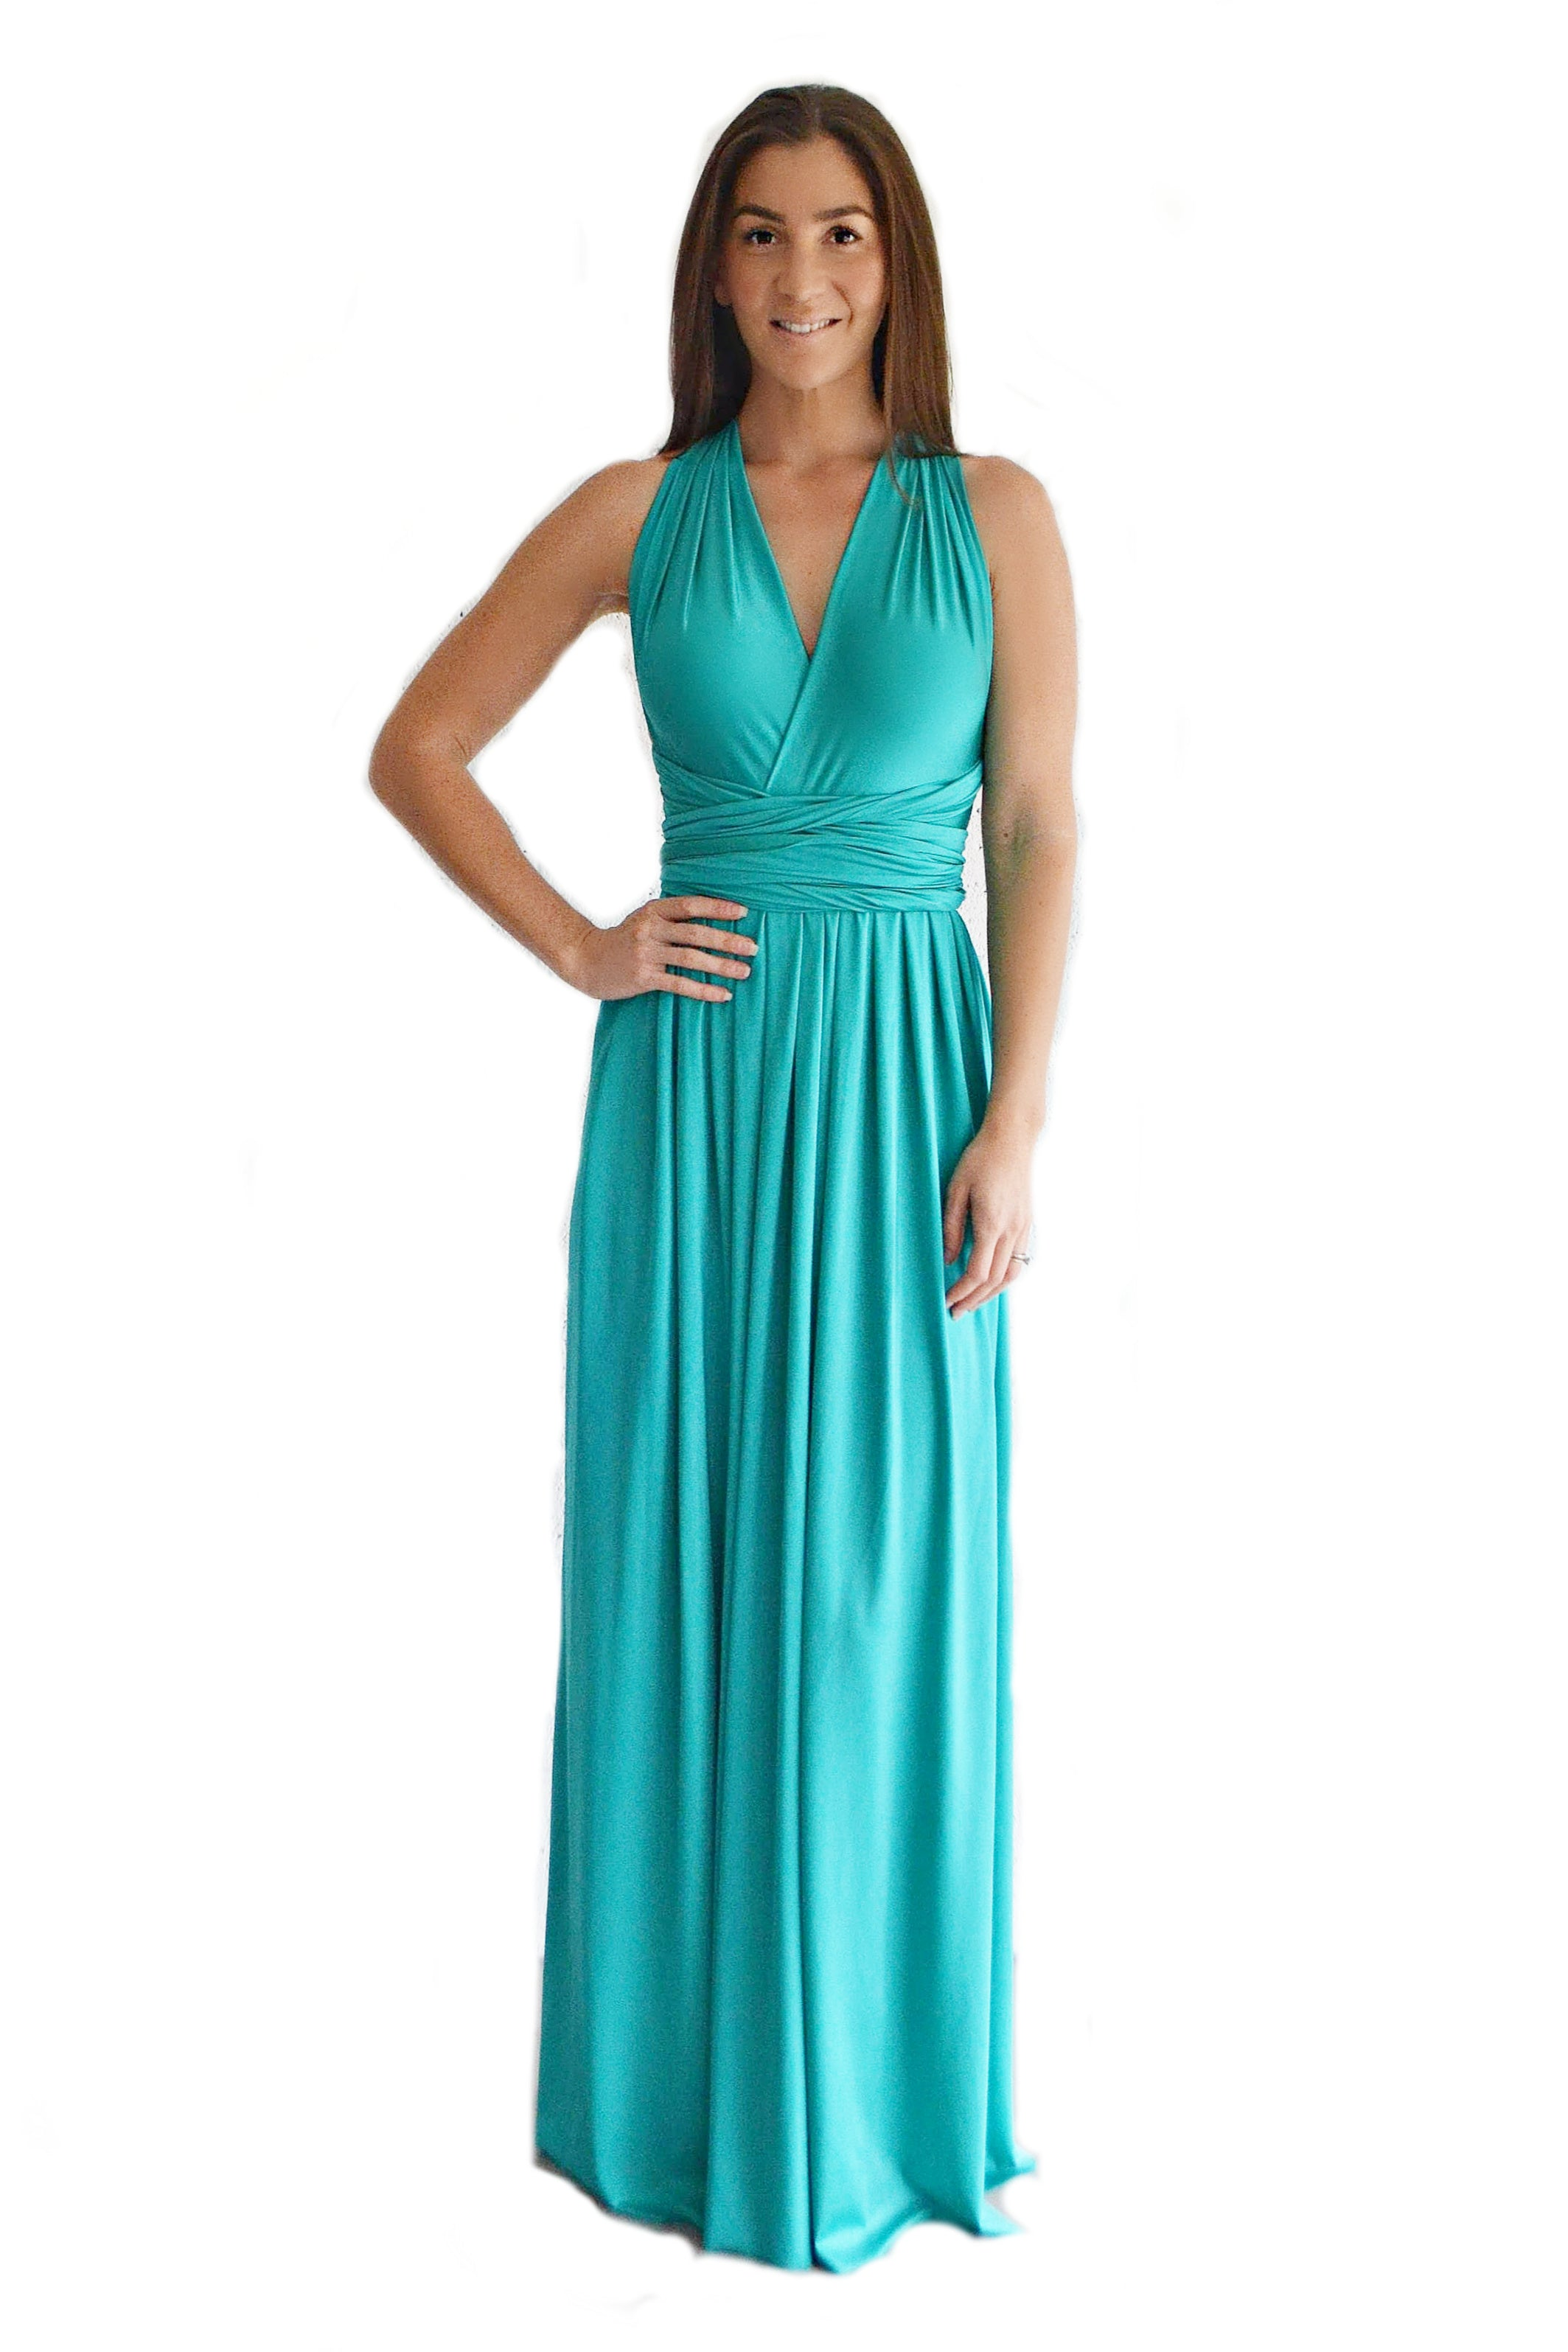 Quick Buy Convertible Pleated Maxi - Made by Erika Convertible Collection